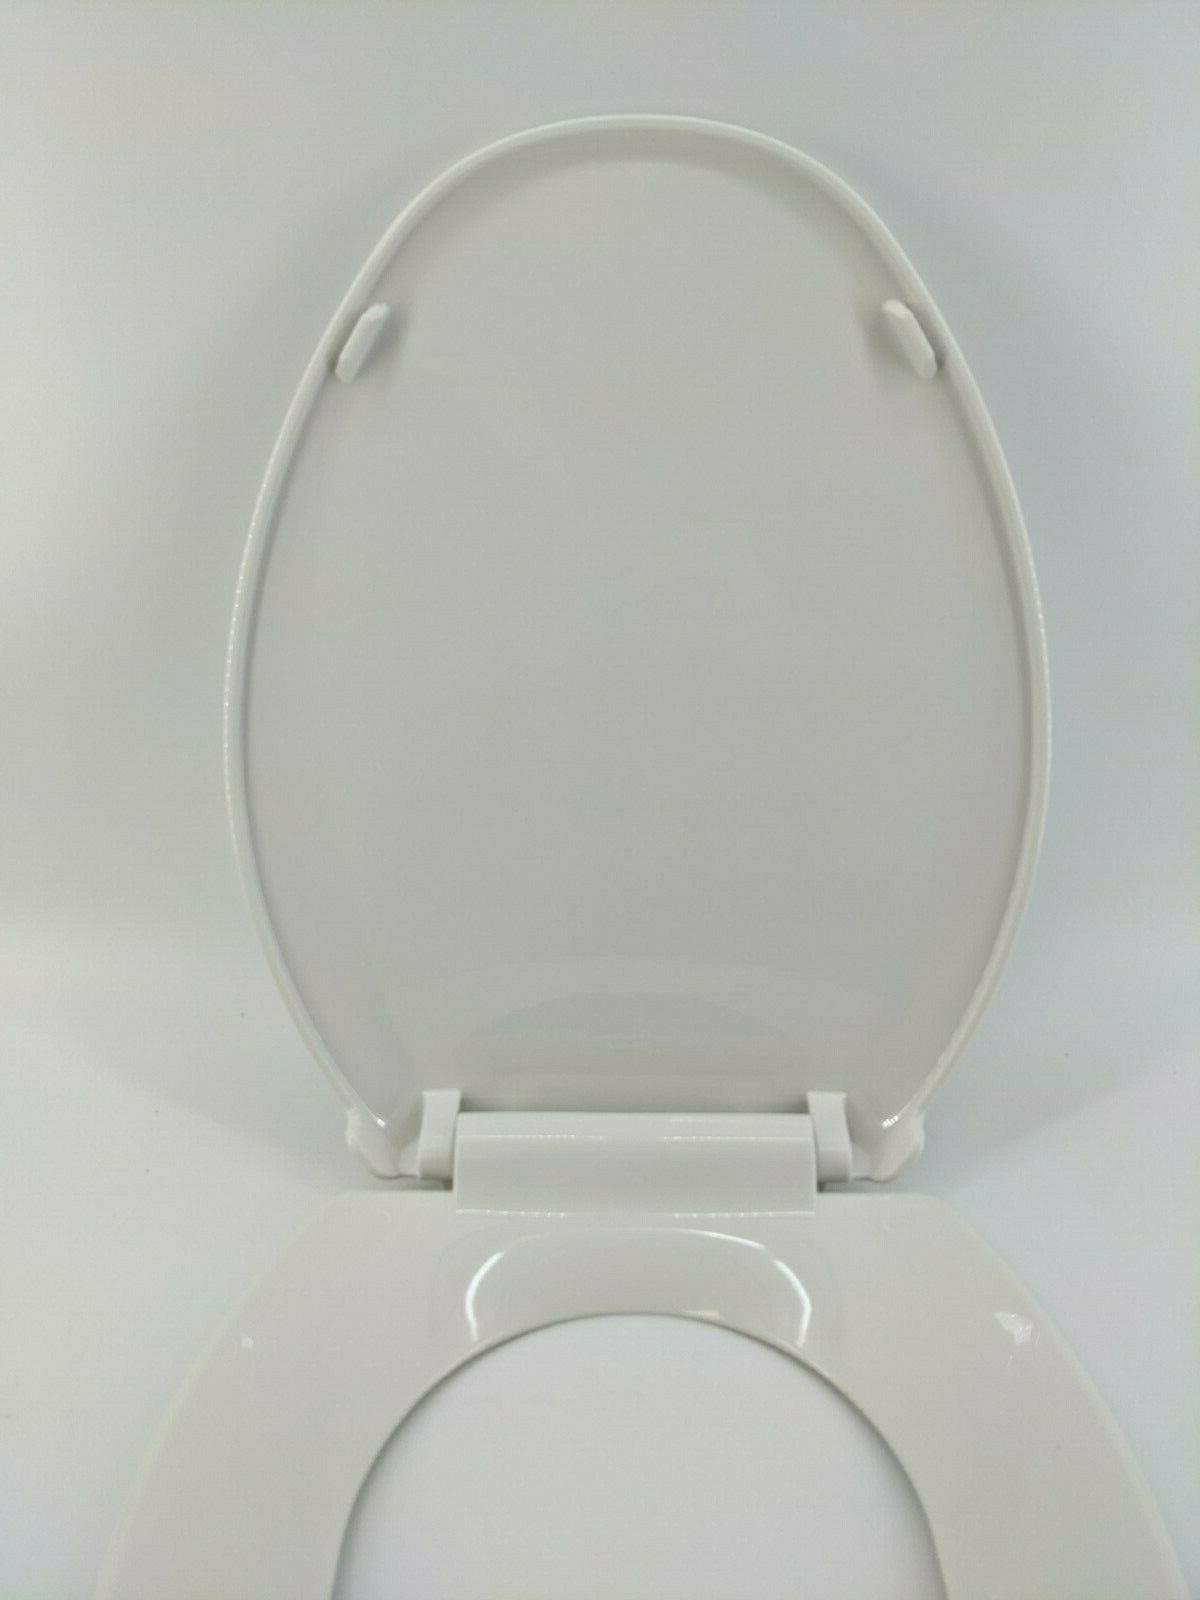 American Standard Cardiff Slow Soft Toilet Seat -